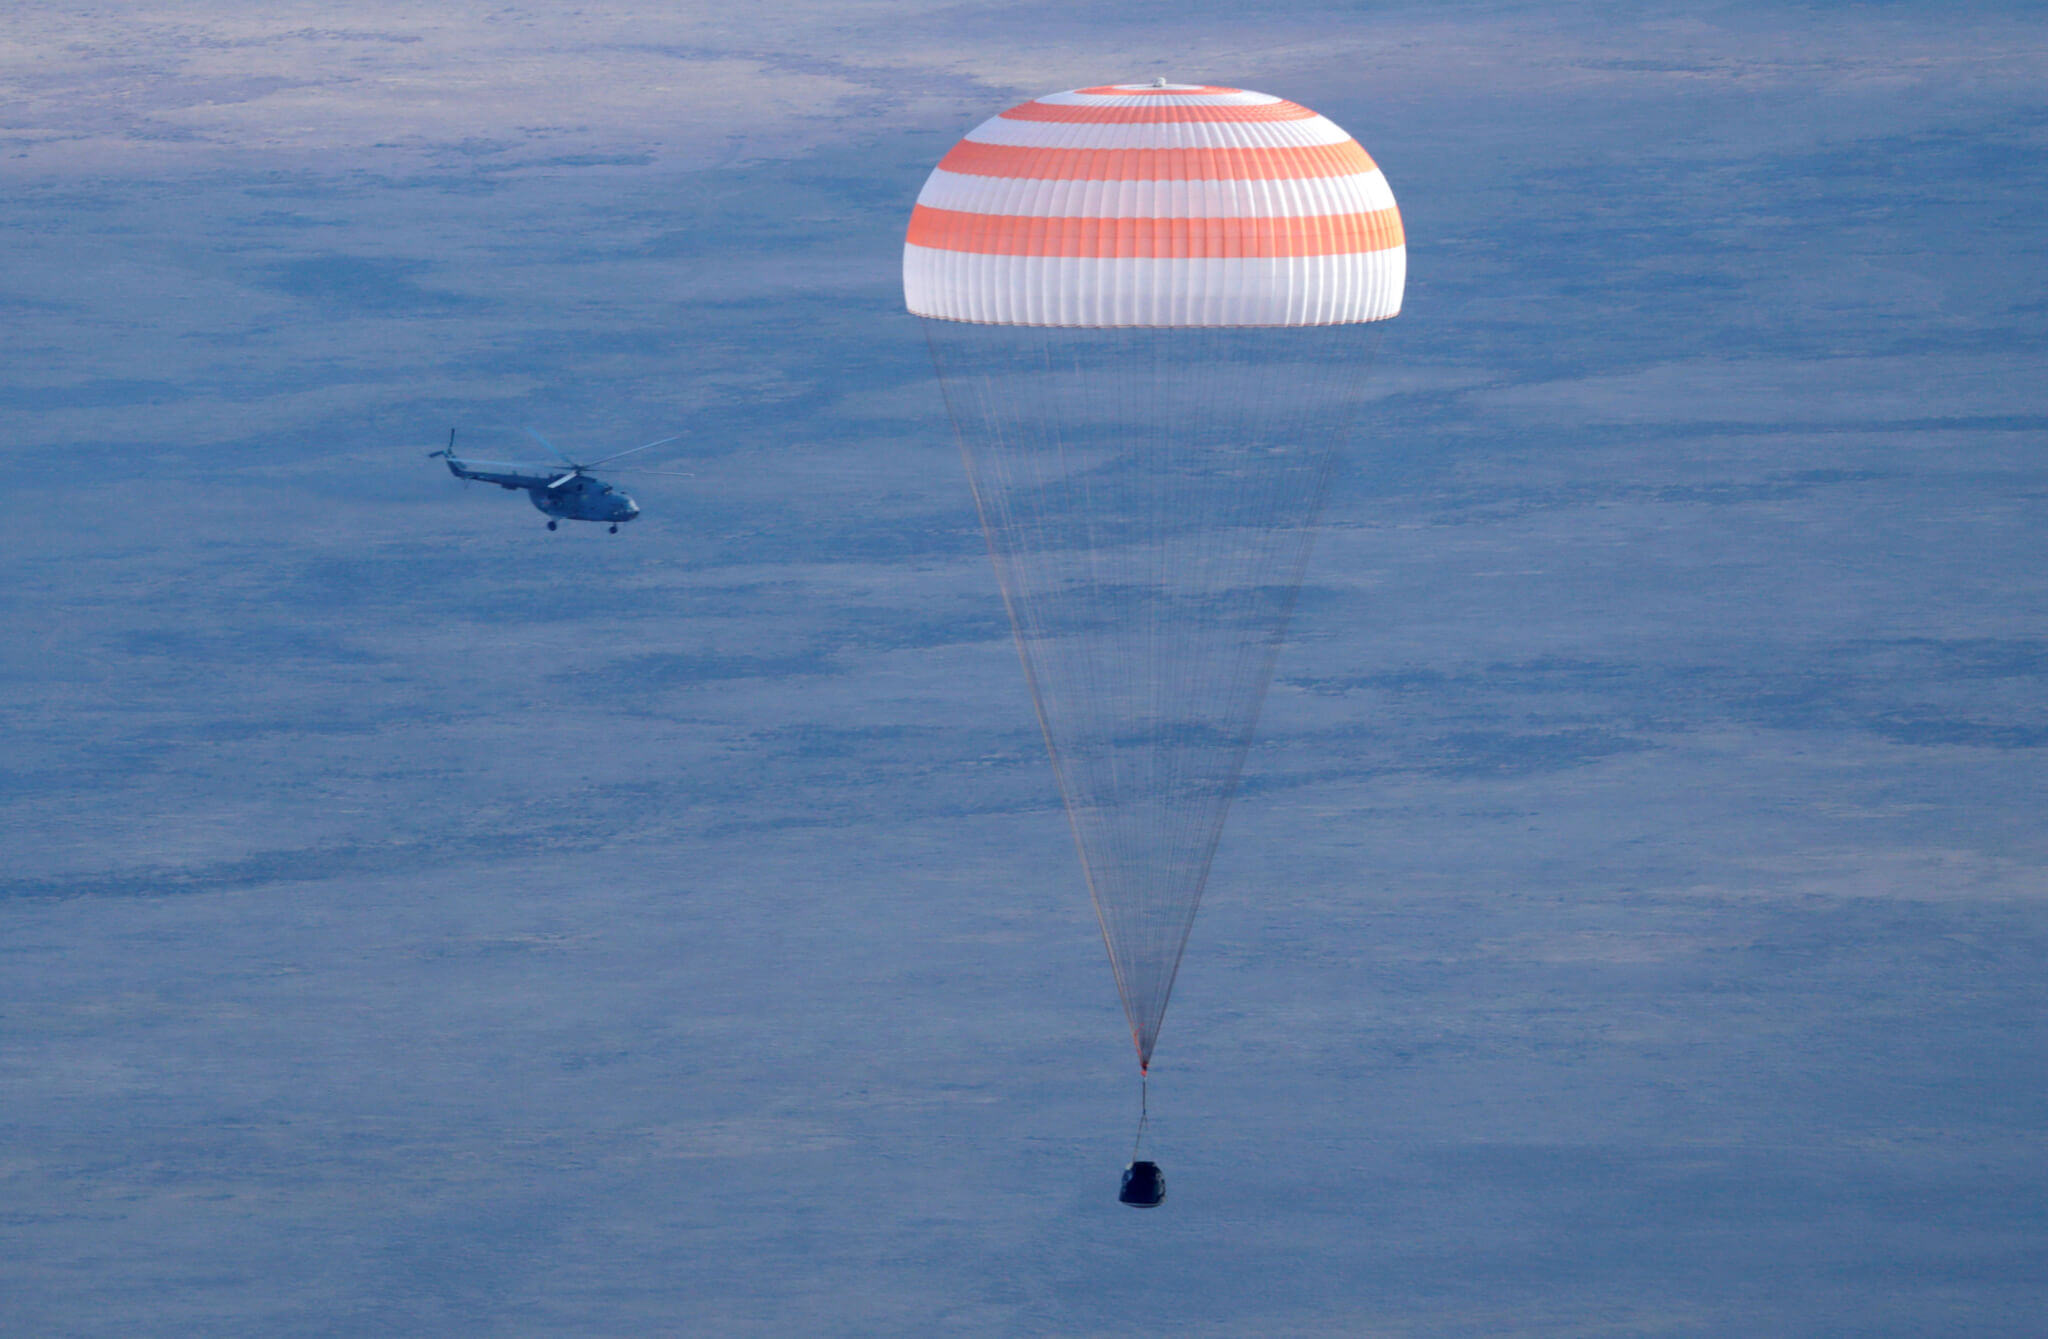 A Russian Soyuz MS space capsule carrying International Space Station (ISS) crew members, Kate Rubins of the U.S., Anatoly Ivanishin of Russia and Takuya Onishi of Japan, descends outside the town of Dzhezkazgan (Zhezkazgan), Kazakhstan, October 30, 2016. REUTERS/Dmitri Lovetsky/Pool